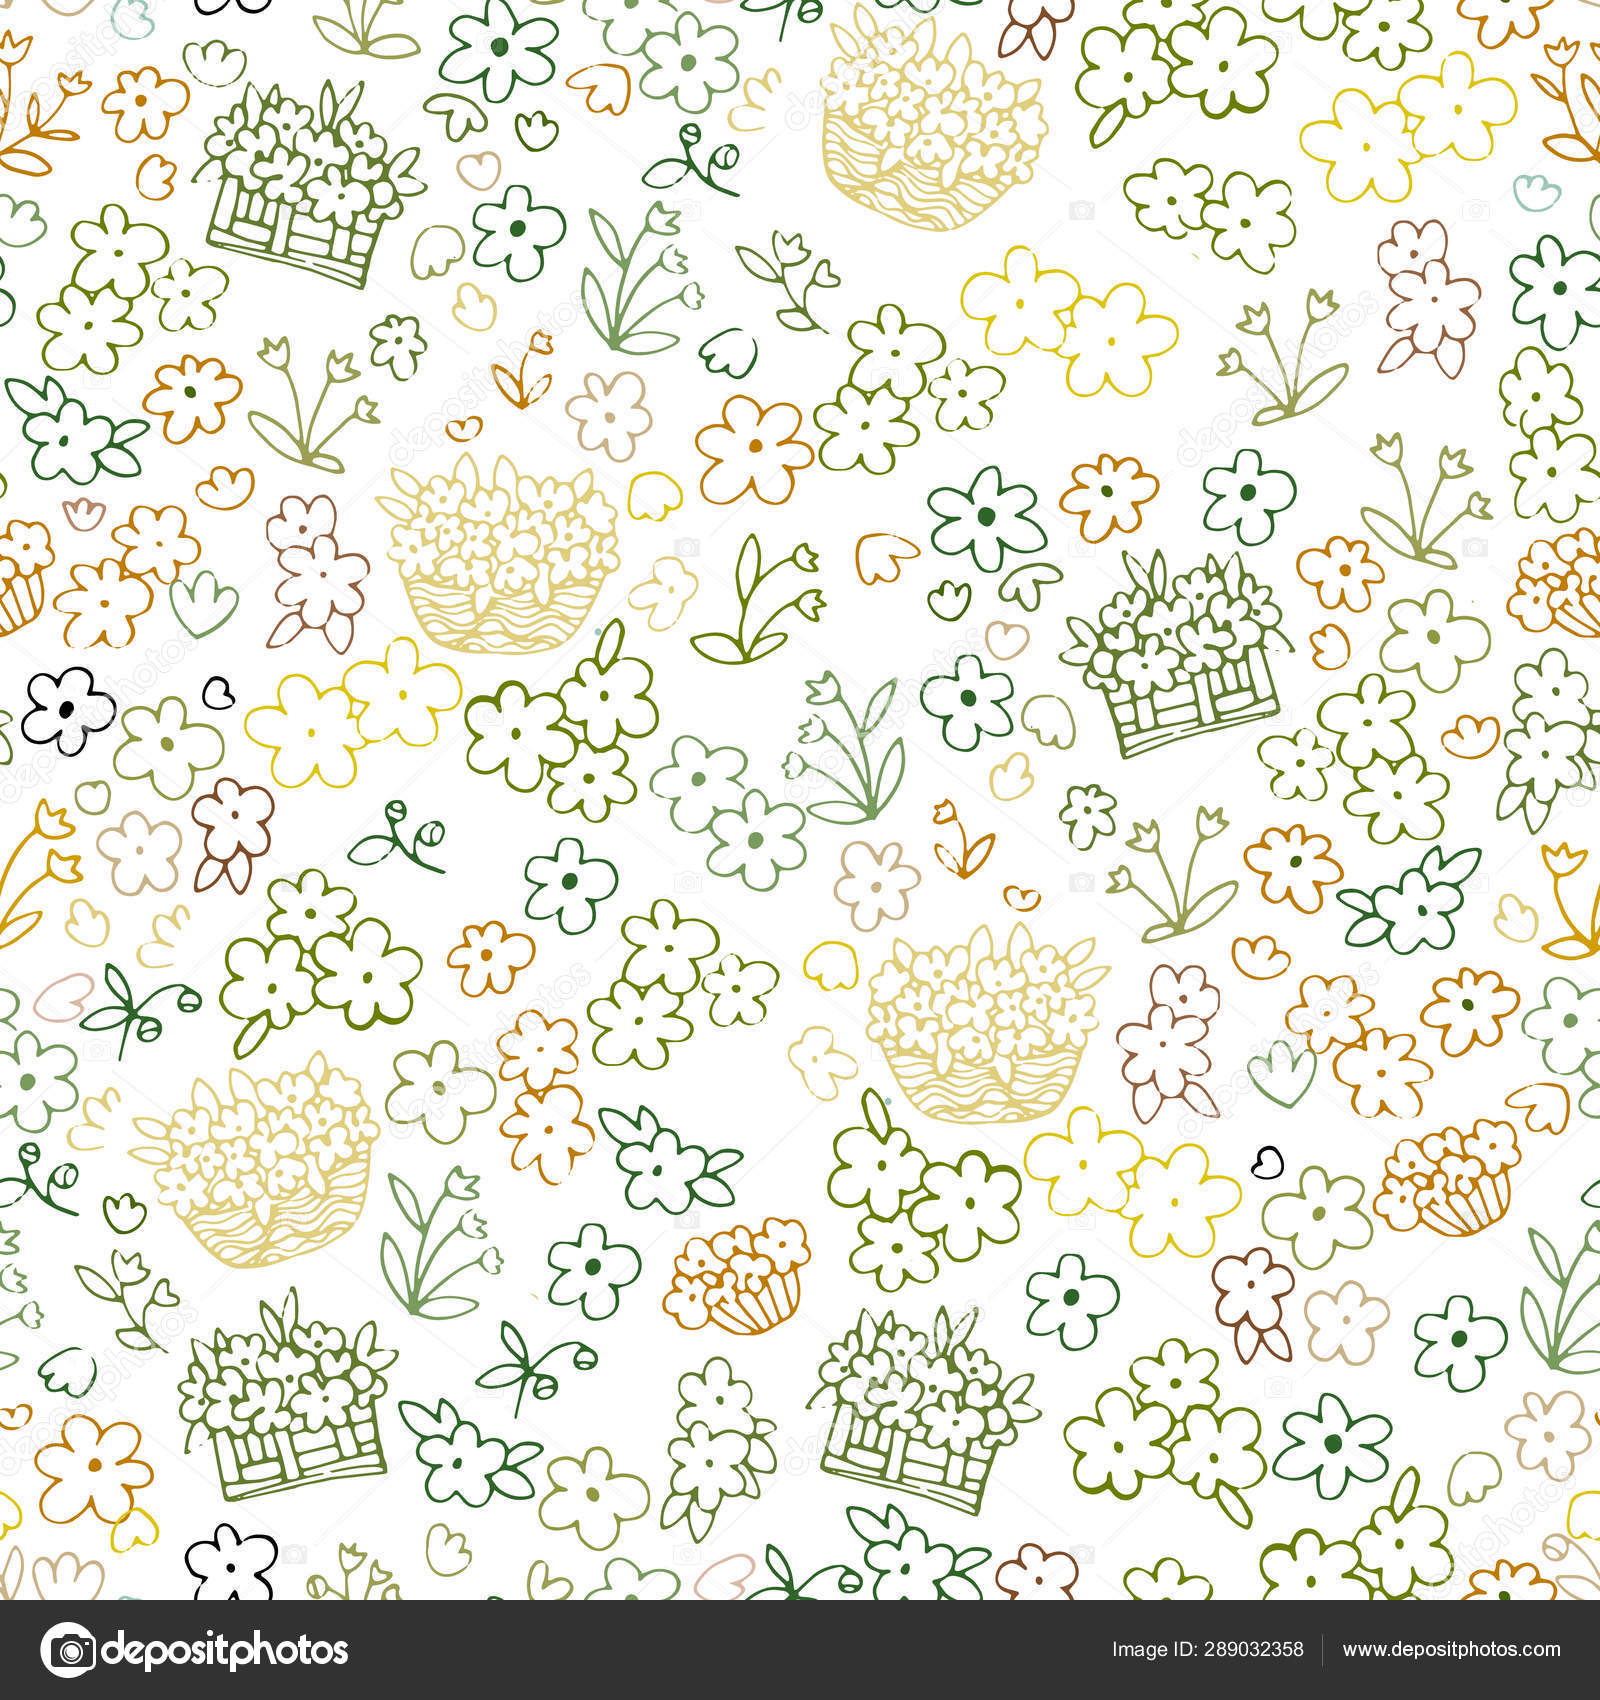 Cute Seamless Floral Pattern Simple Flowers Background For Fabric